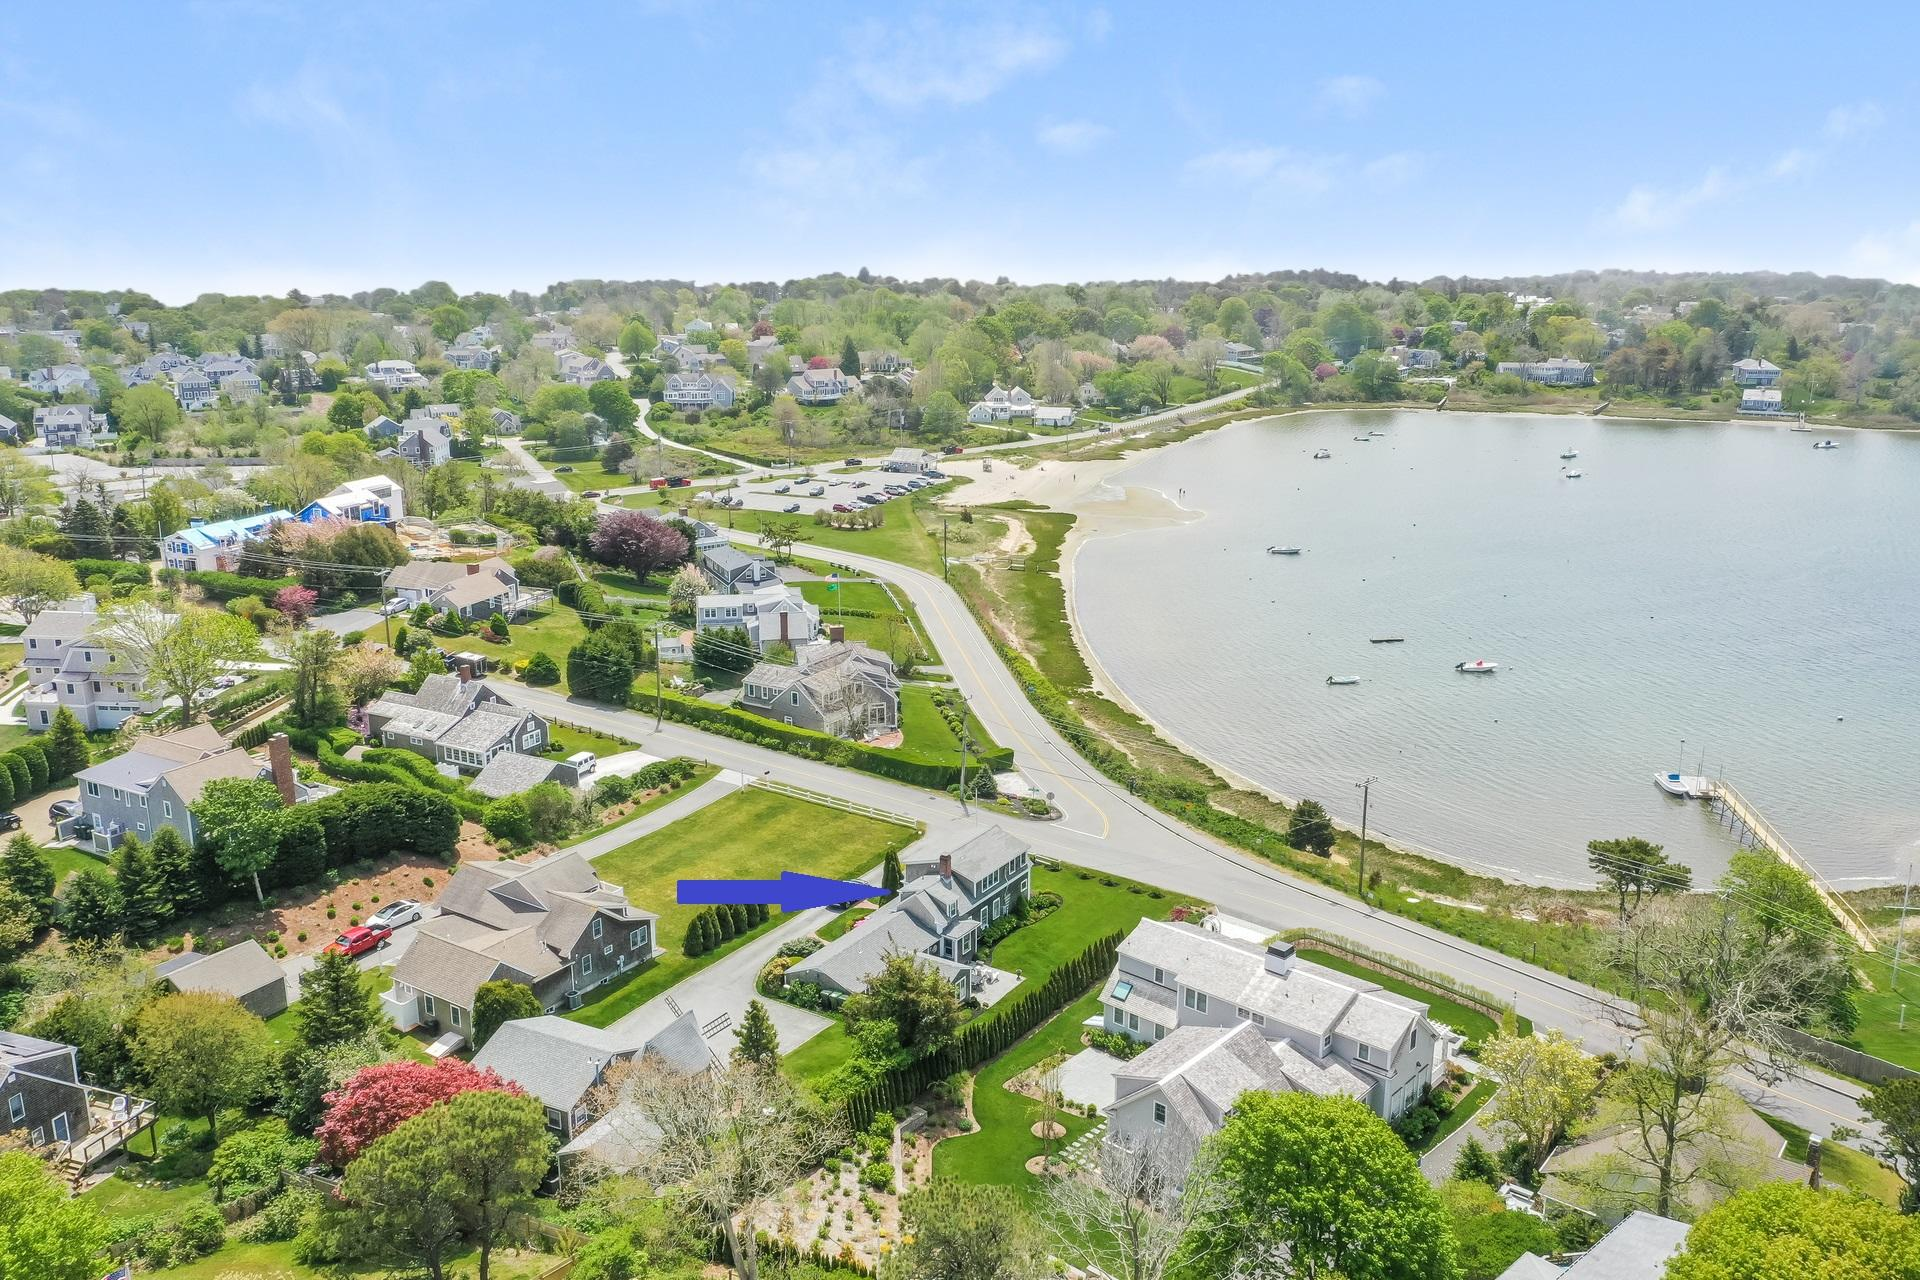 133 Queen Anne Road, Chatham MA, 02633 details